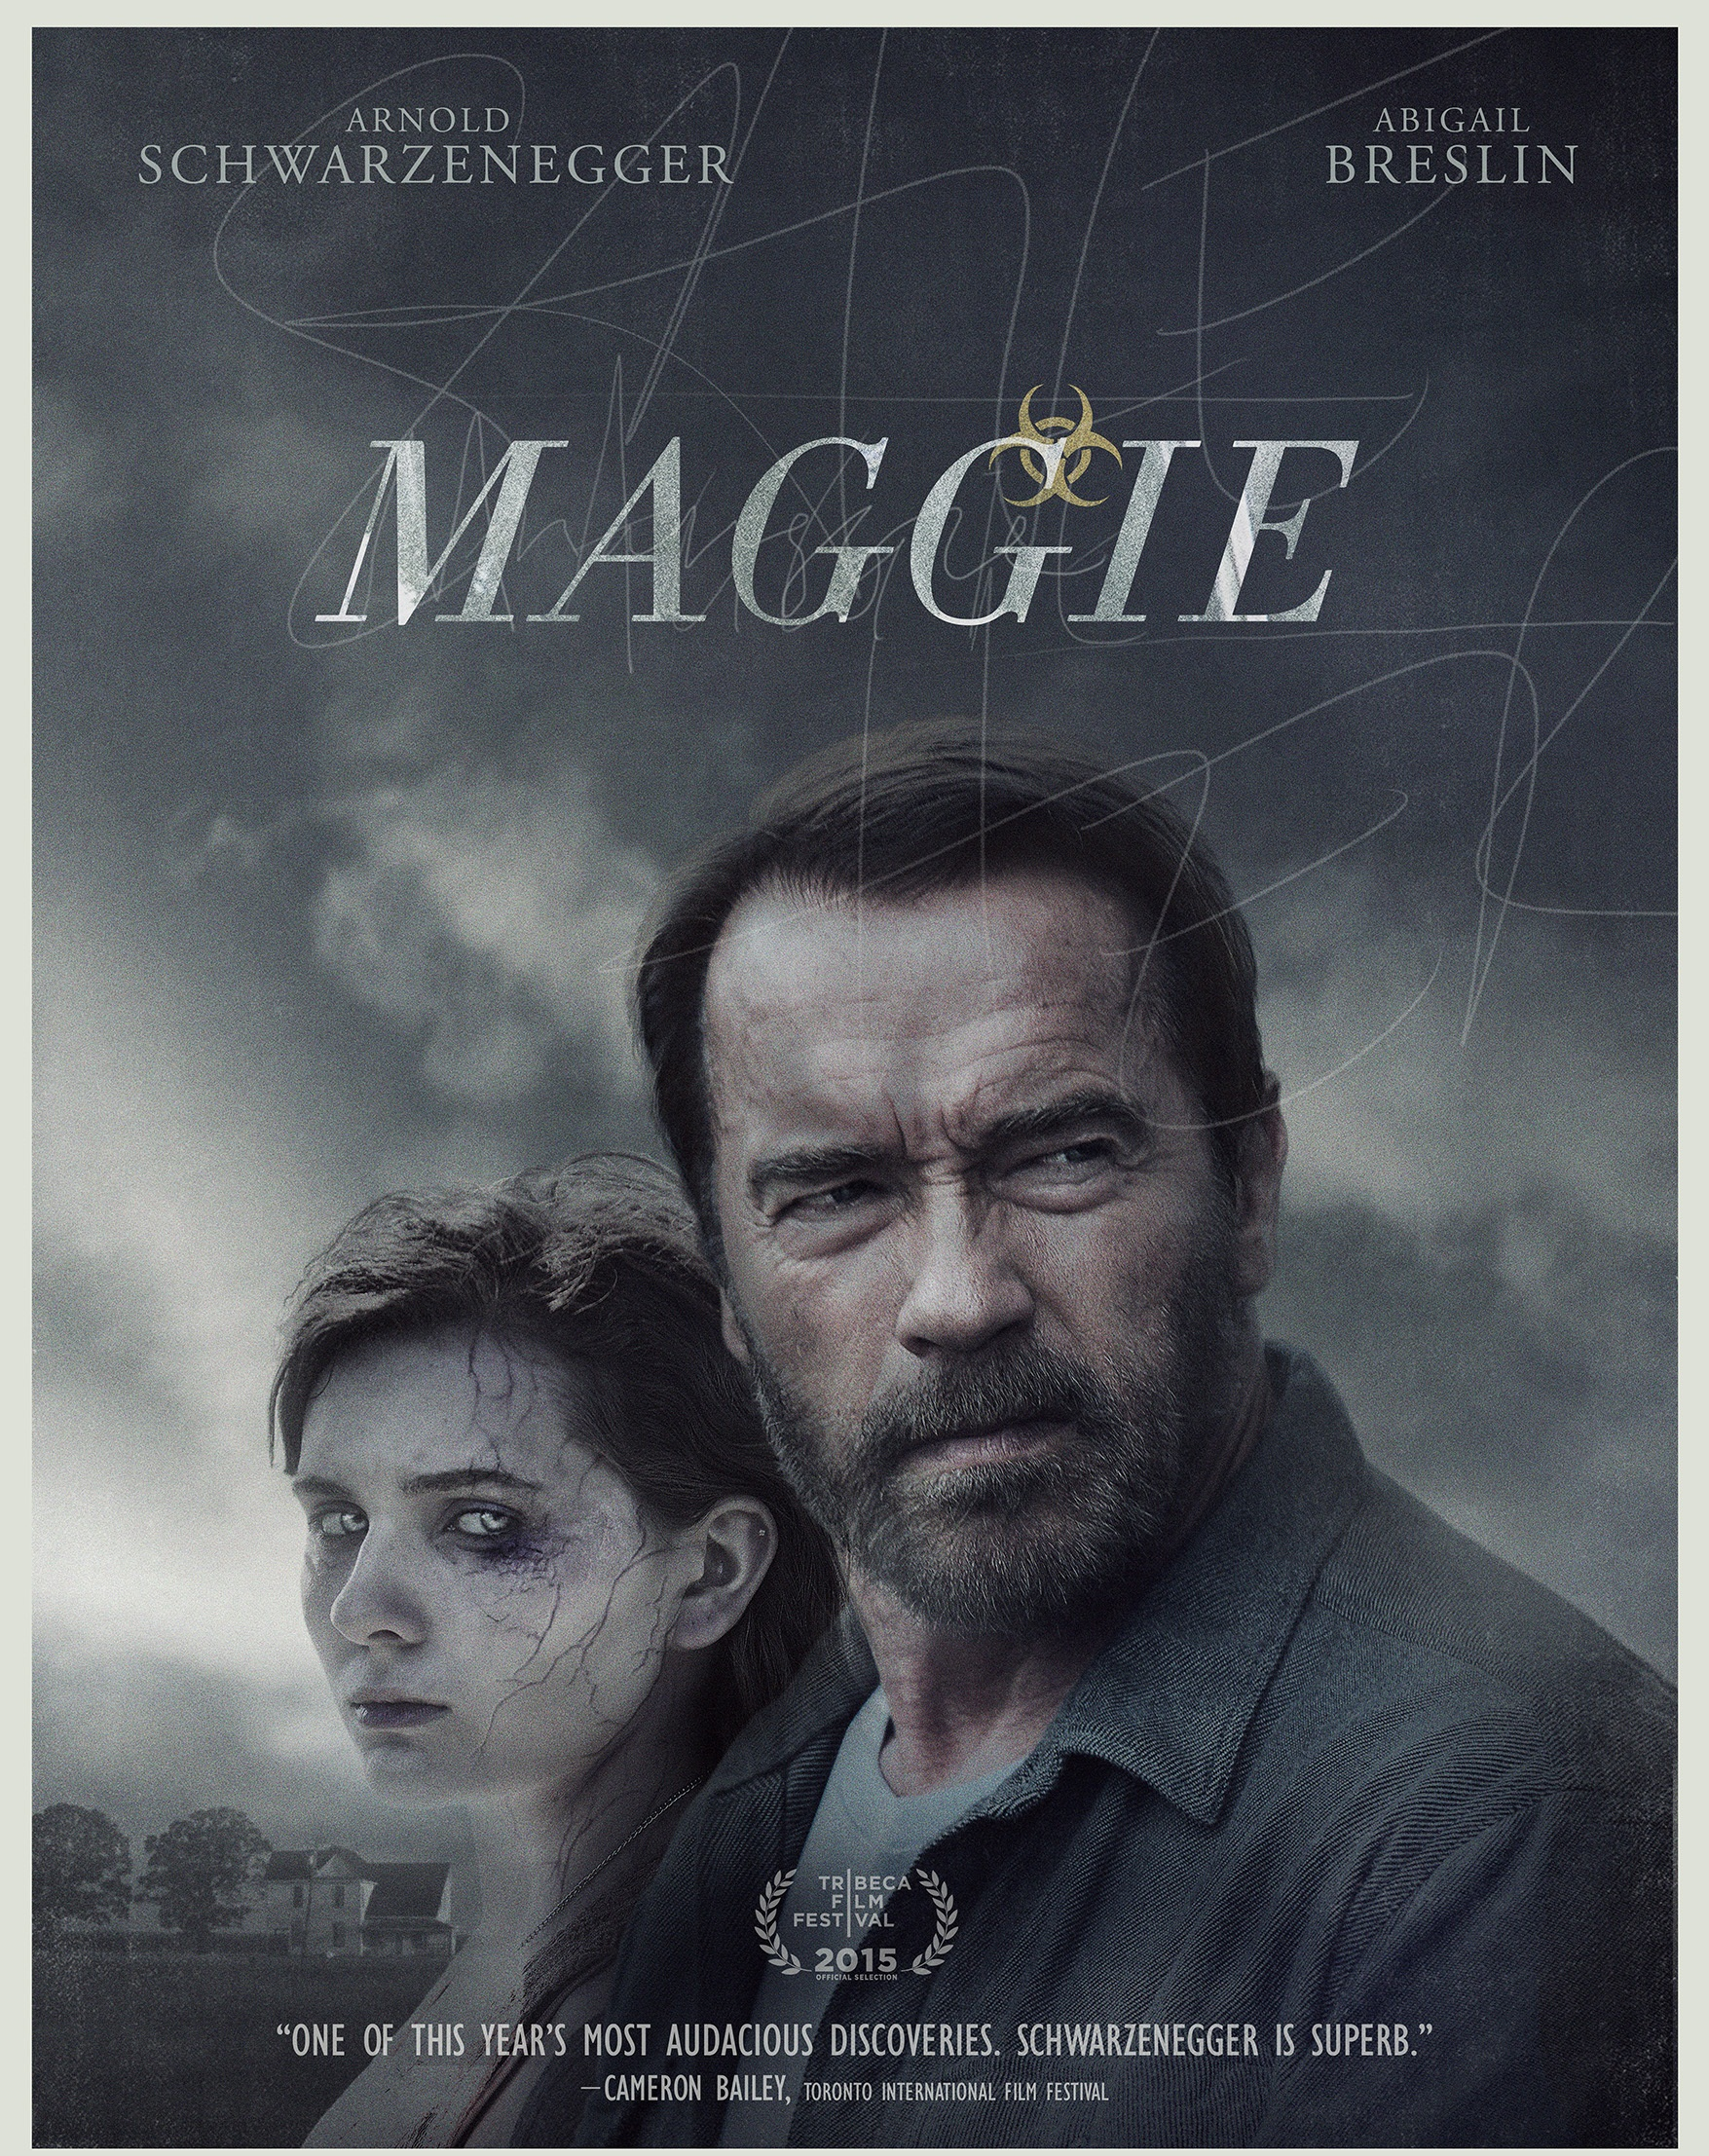 Maggie film review: Arnie faces the zombie apocalypse